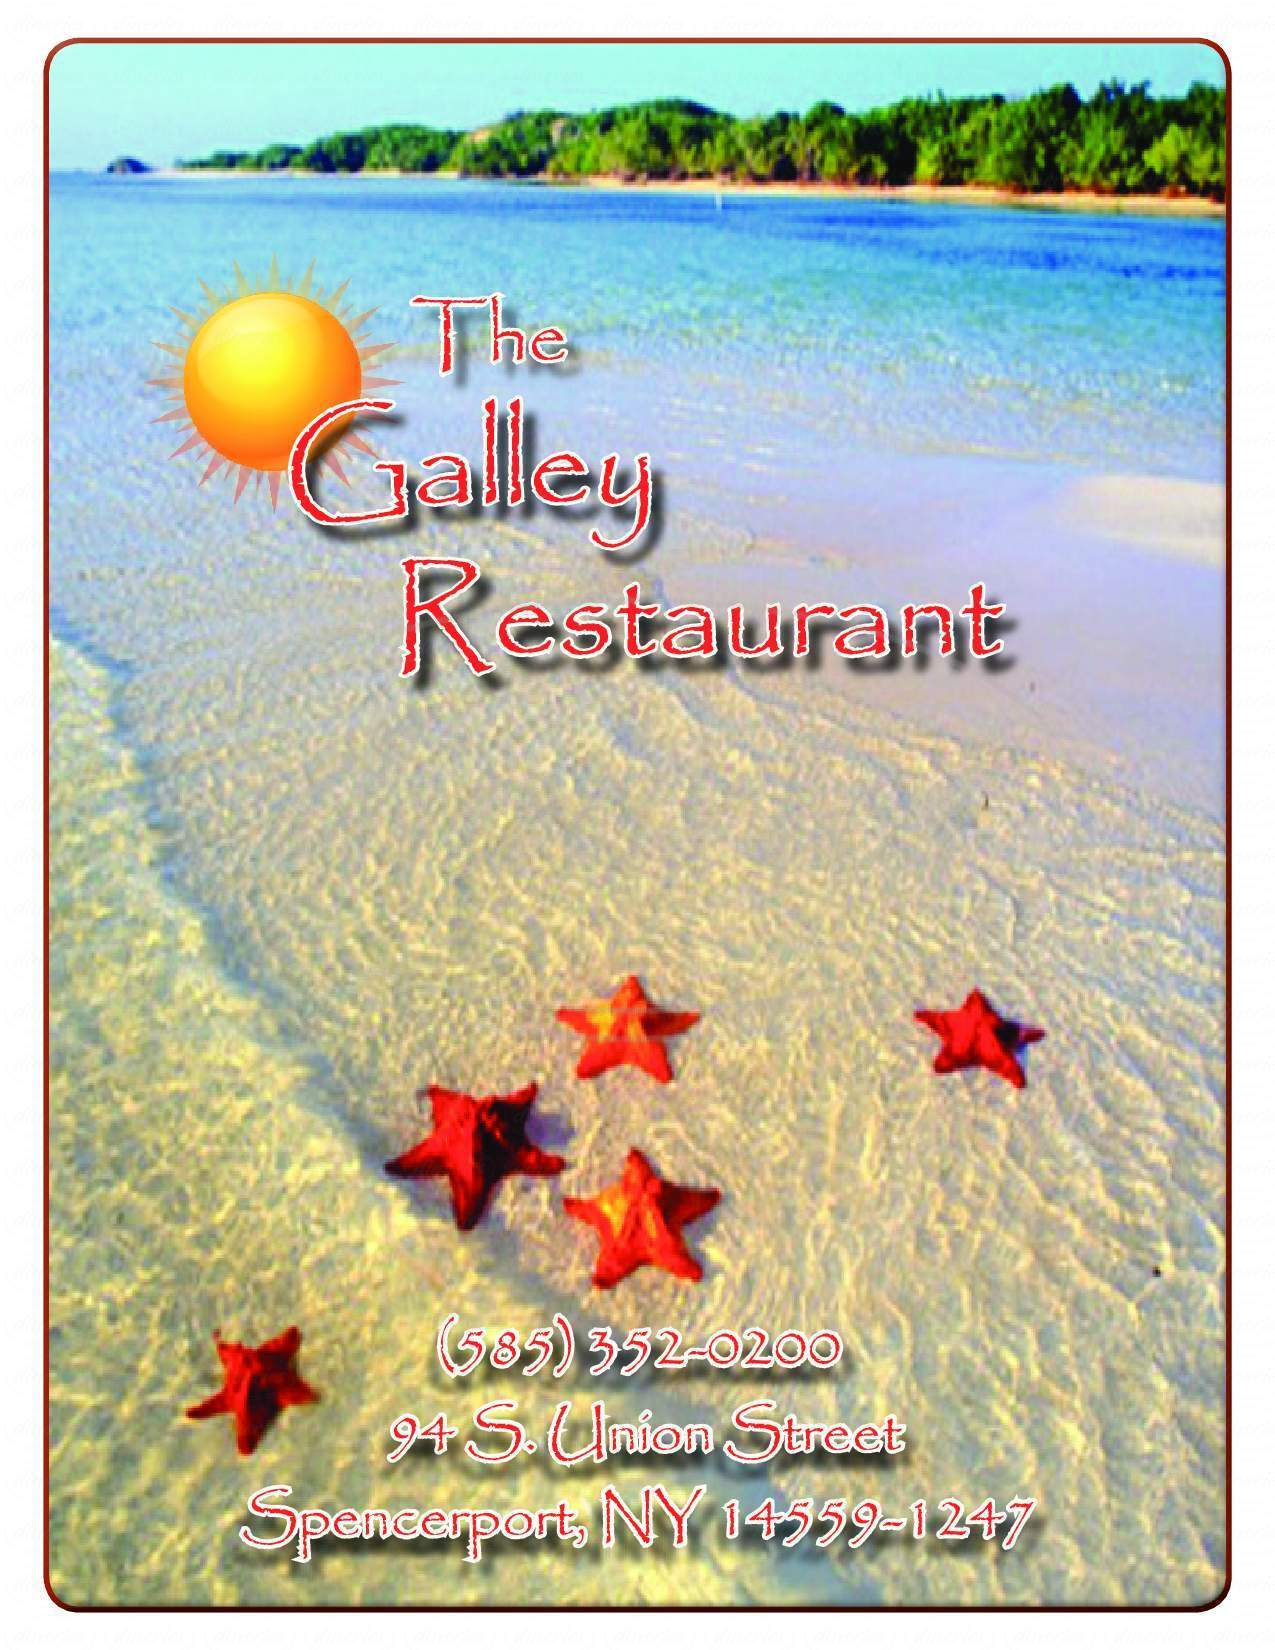 menu for The Galley